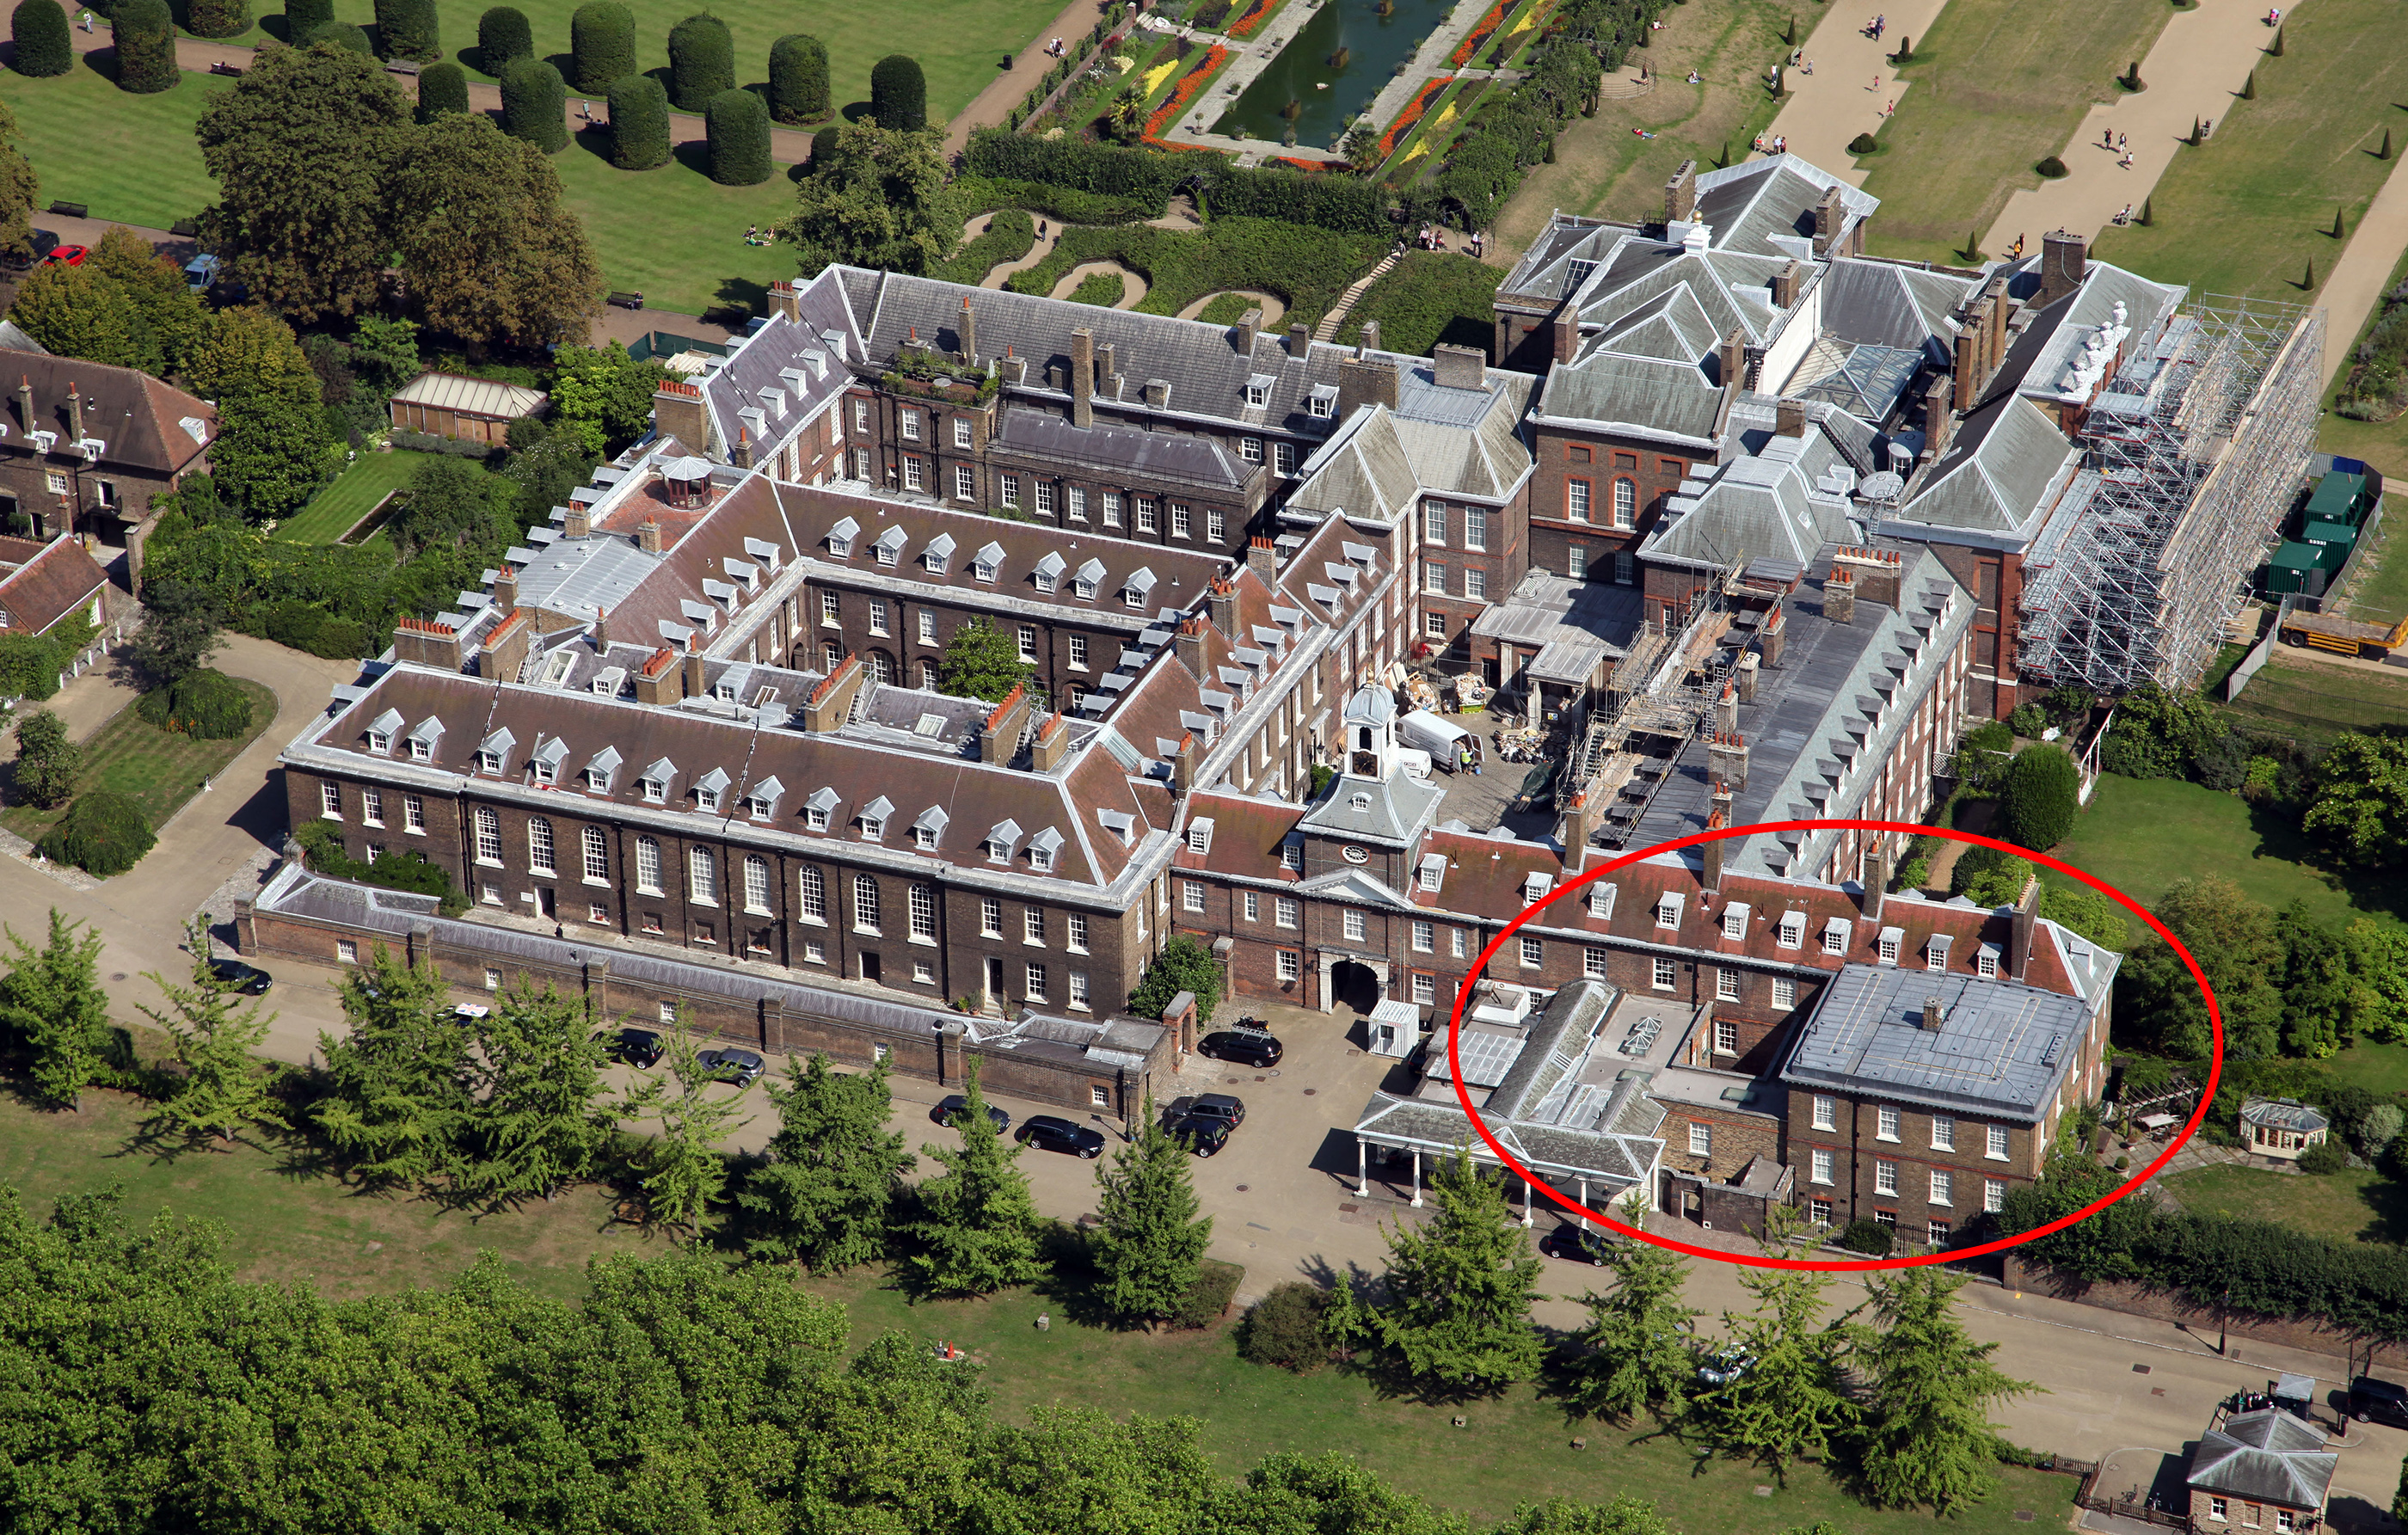 aerial view of Kensington Palace in London, home of Prince William and Kate Middleton the Duchess of Cambridge